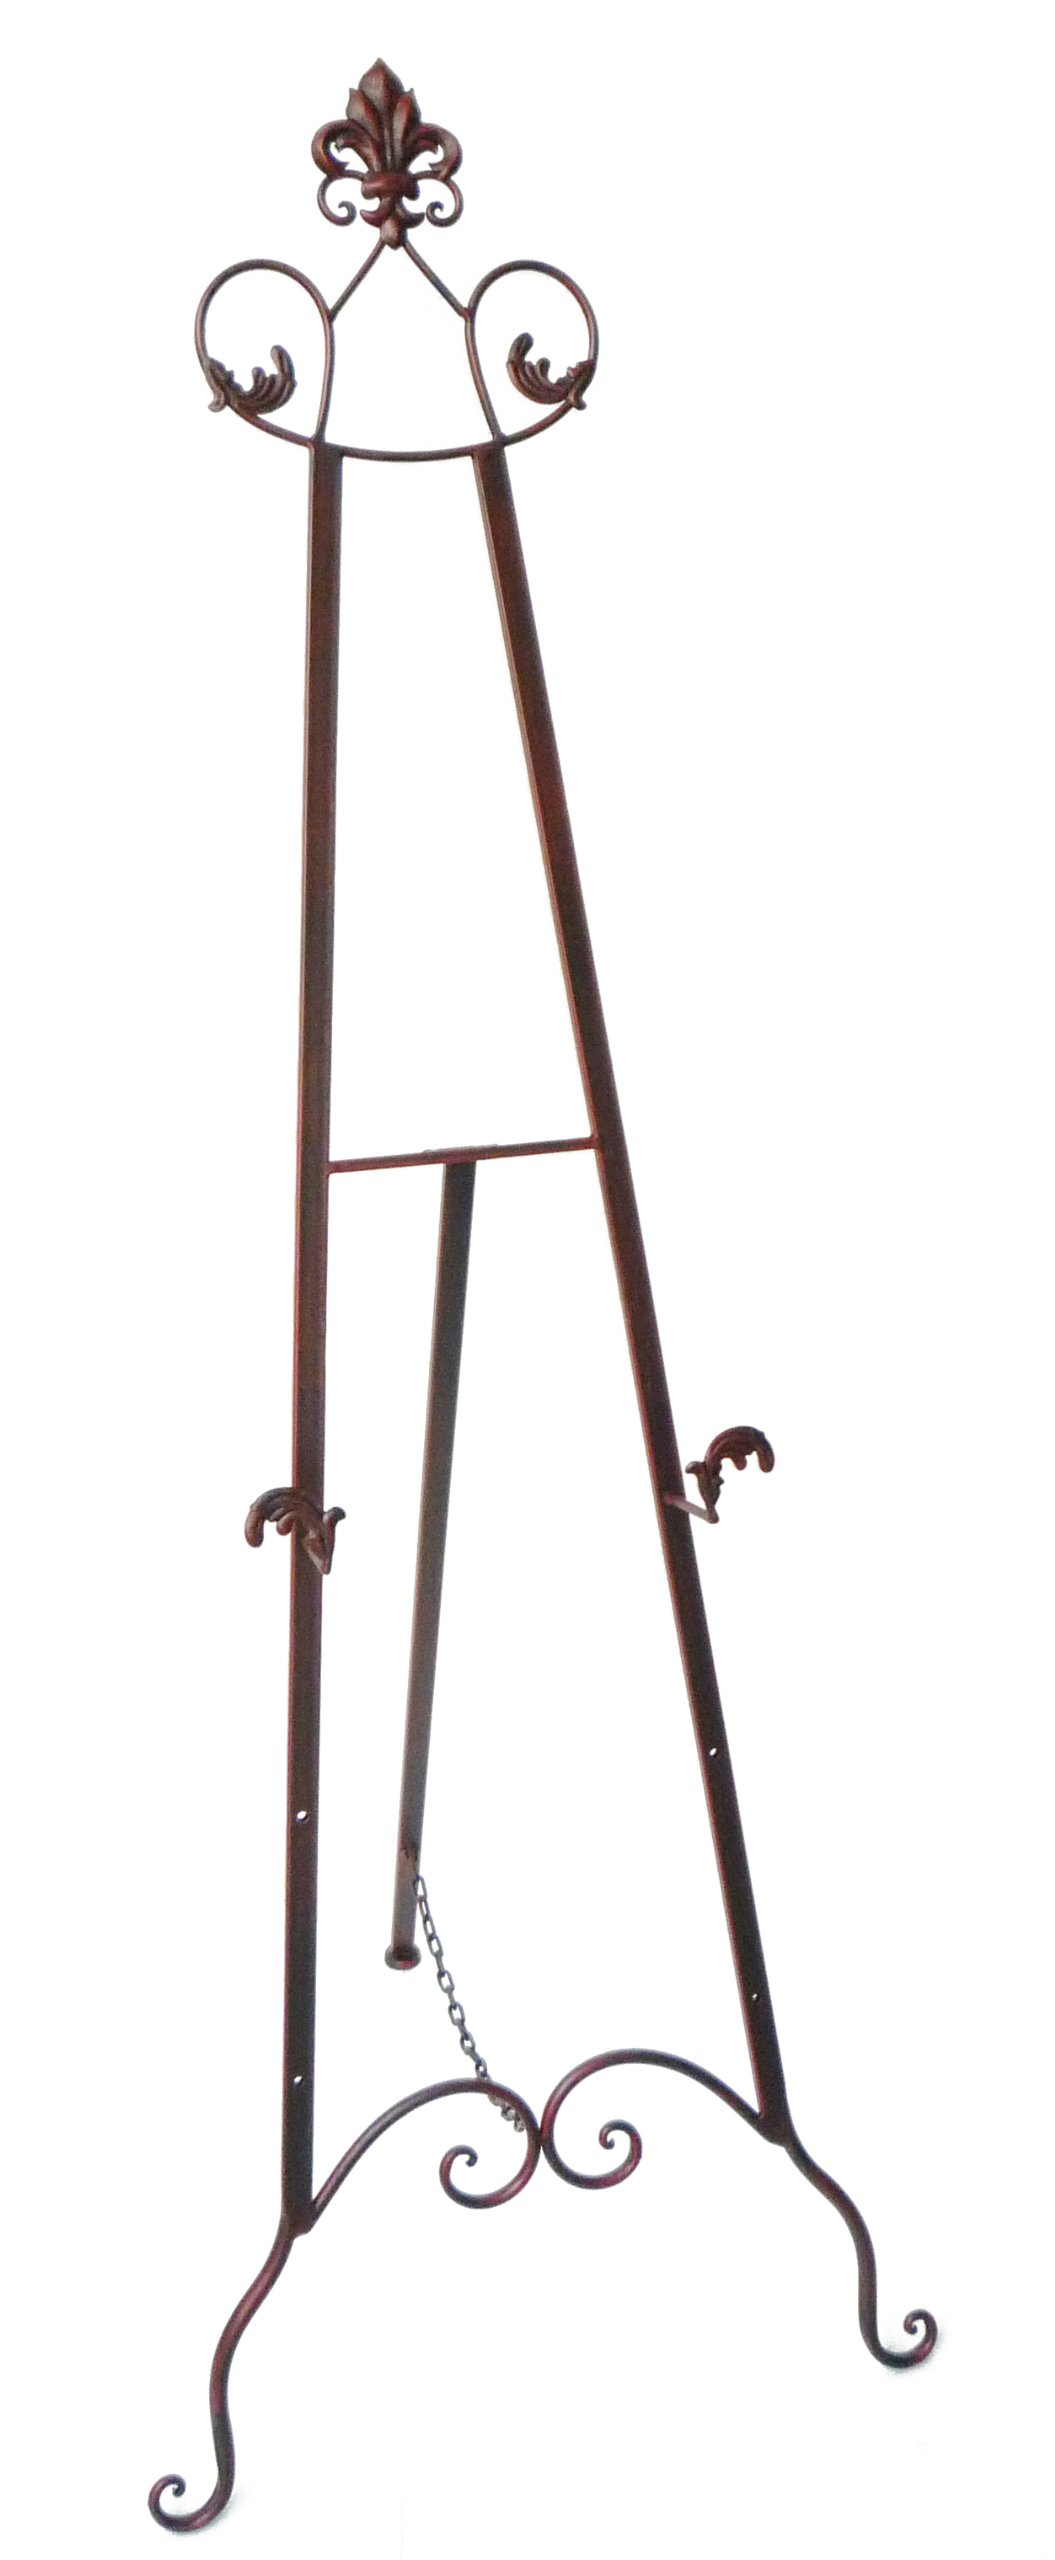 Designstyles Decorative Metal Easel Stand - Adjustable Floor Display for Art Pieces, Signs, Mirrors and Chalk/Dry Erase Boards - 59'' Tall, Antique Finished Iron, Bronze - Royal Accents